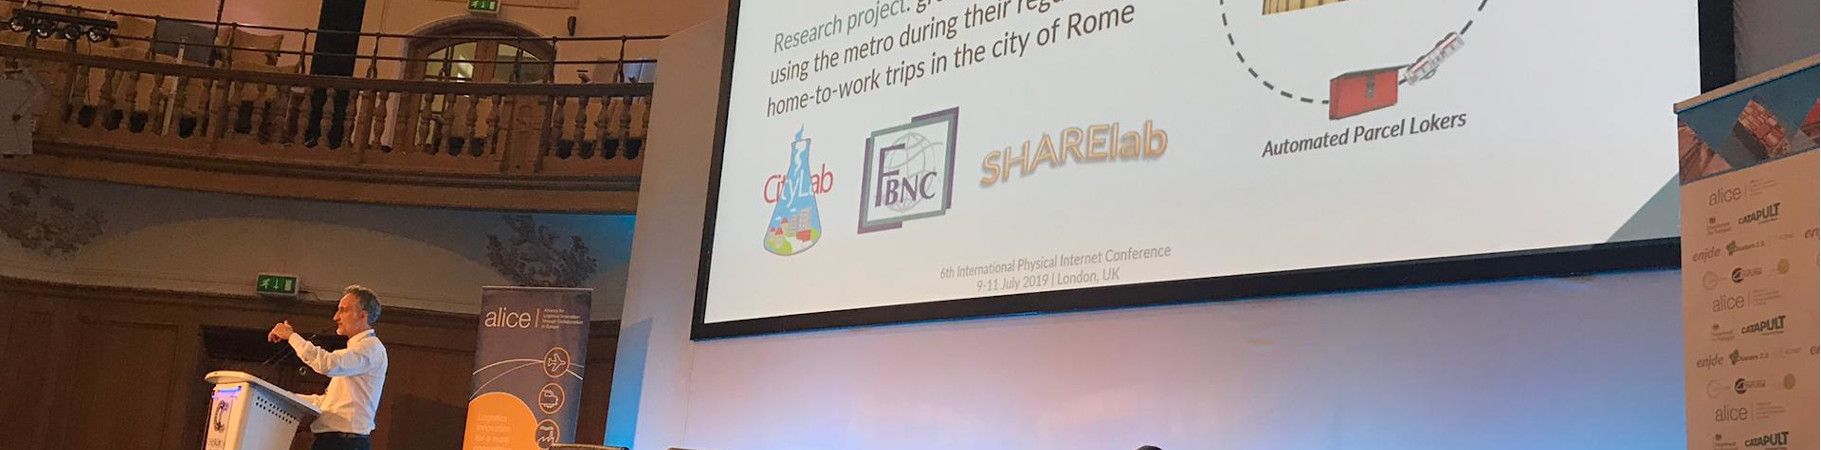 TRElab presents new research at IPIC 2019